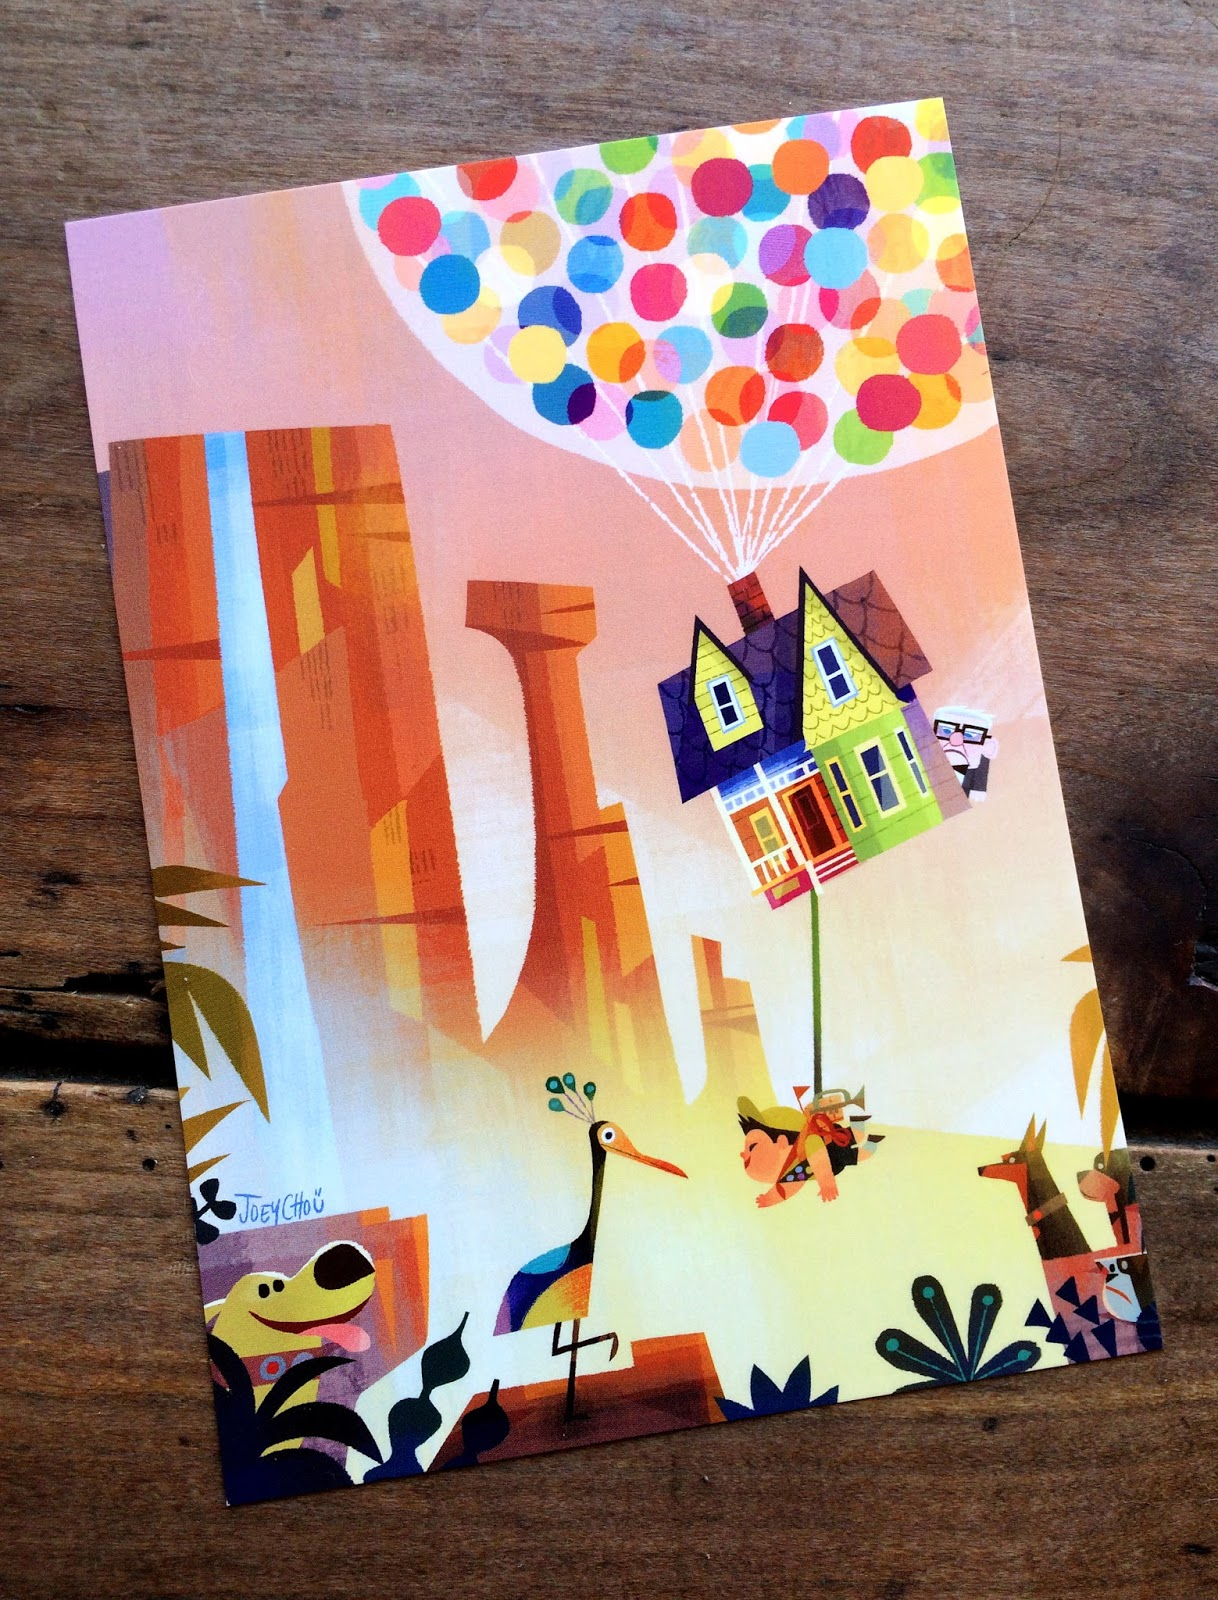 pixar up postcard joey chou